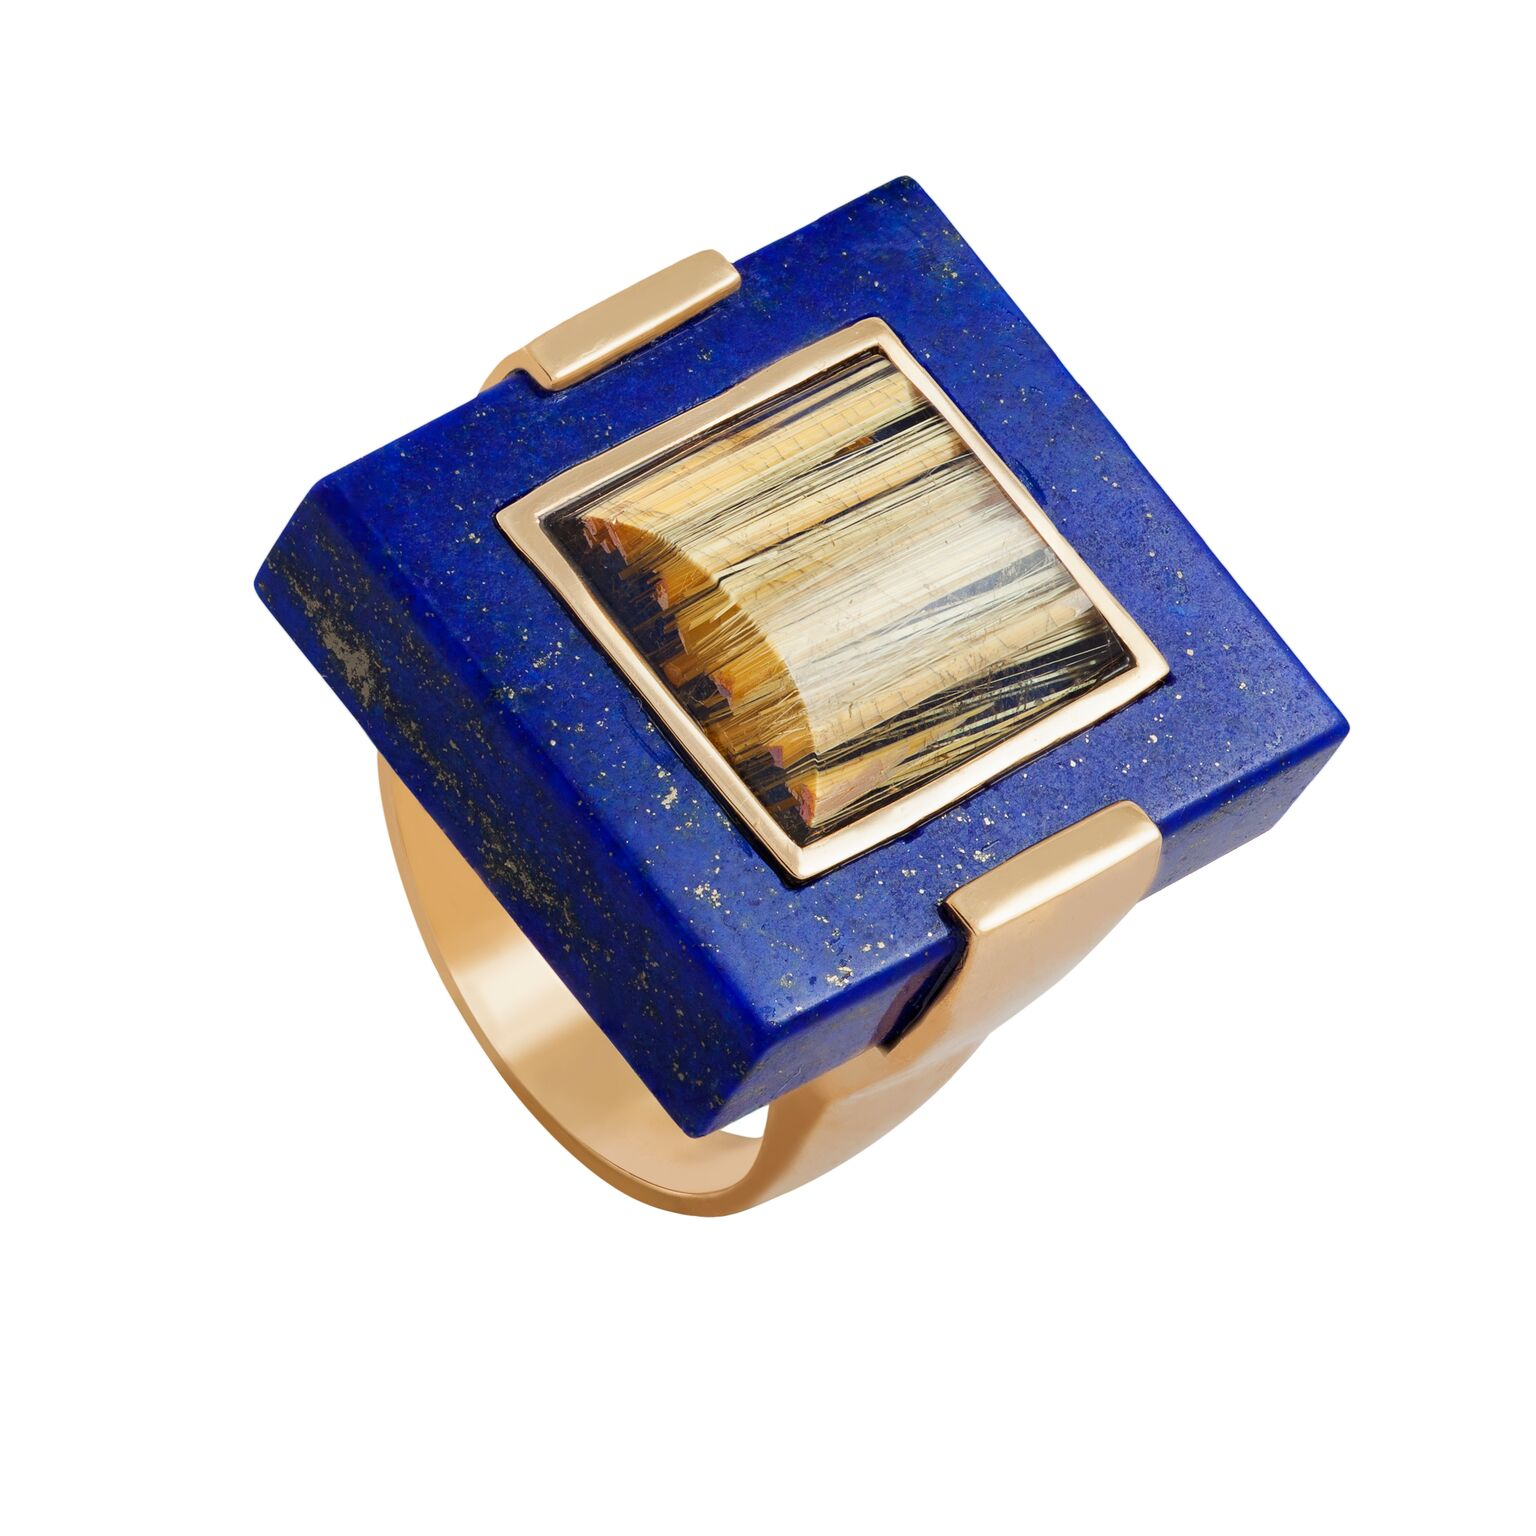 Rutilated quartz and lapis lazuli (Afghanistan) with 18K yellow gold bevel, set in 18k yellow gold ring